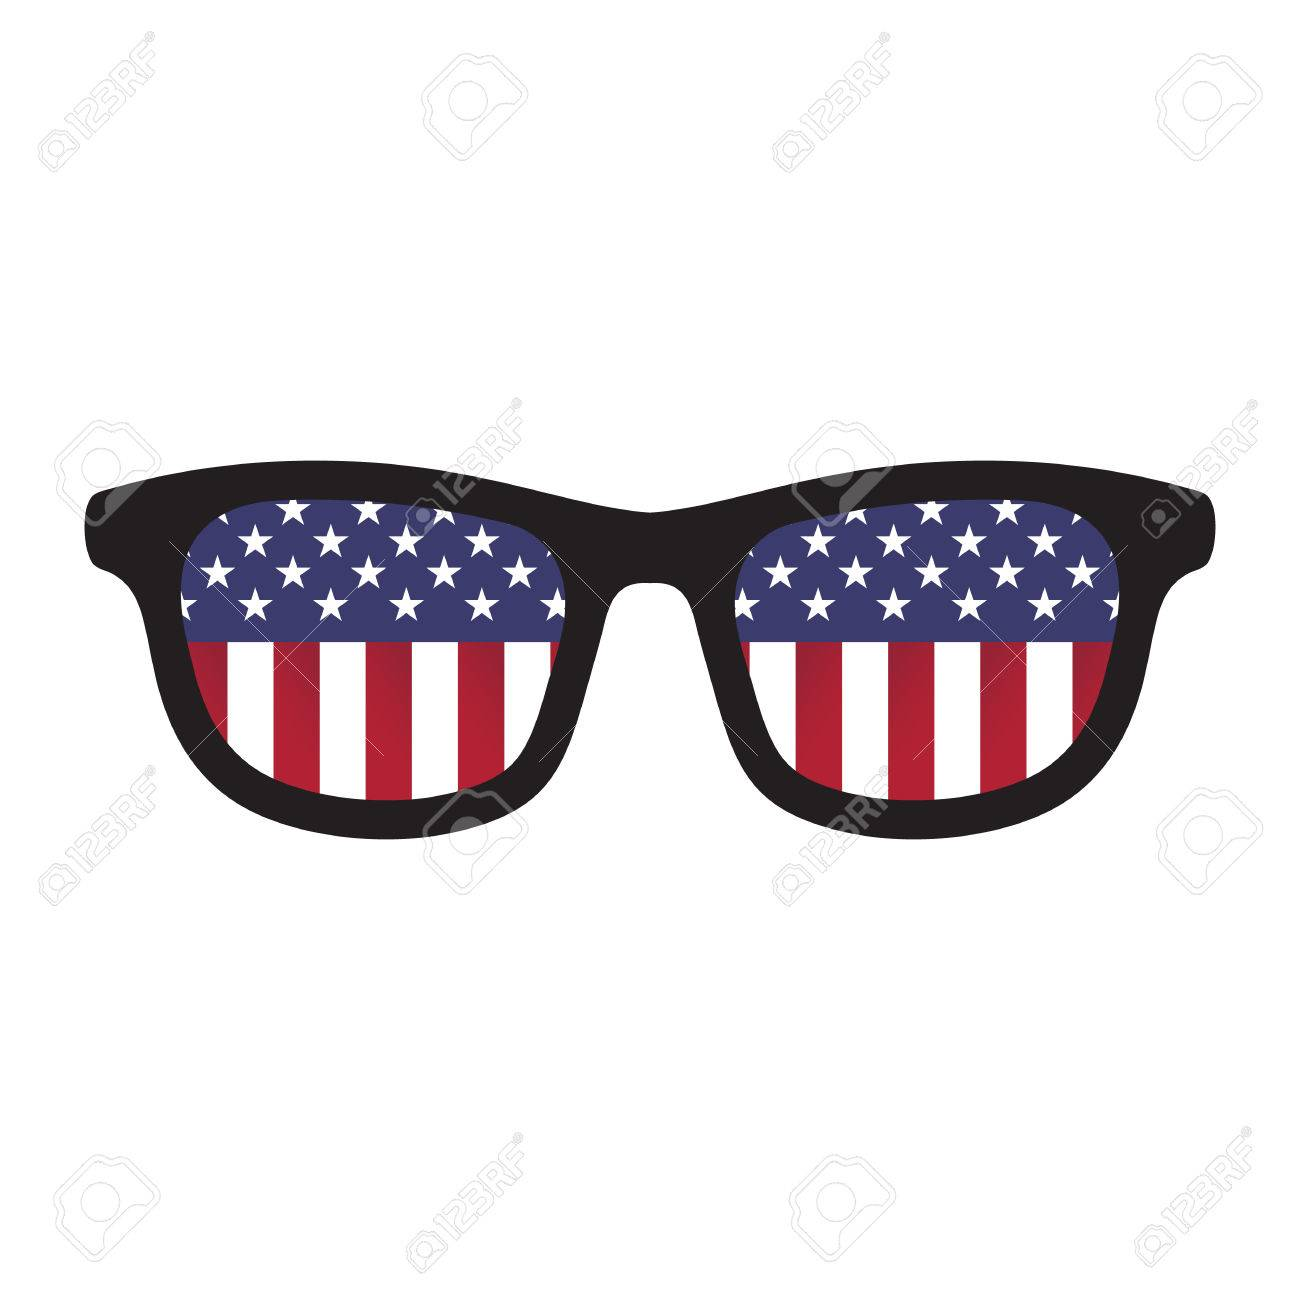 5bc57fd147c Glasses with american flag colors on white background. Stock Vector -  37204061